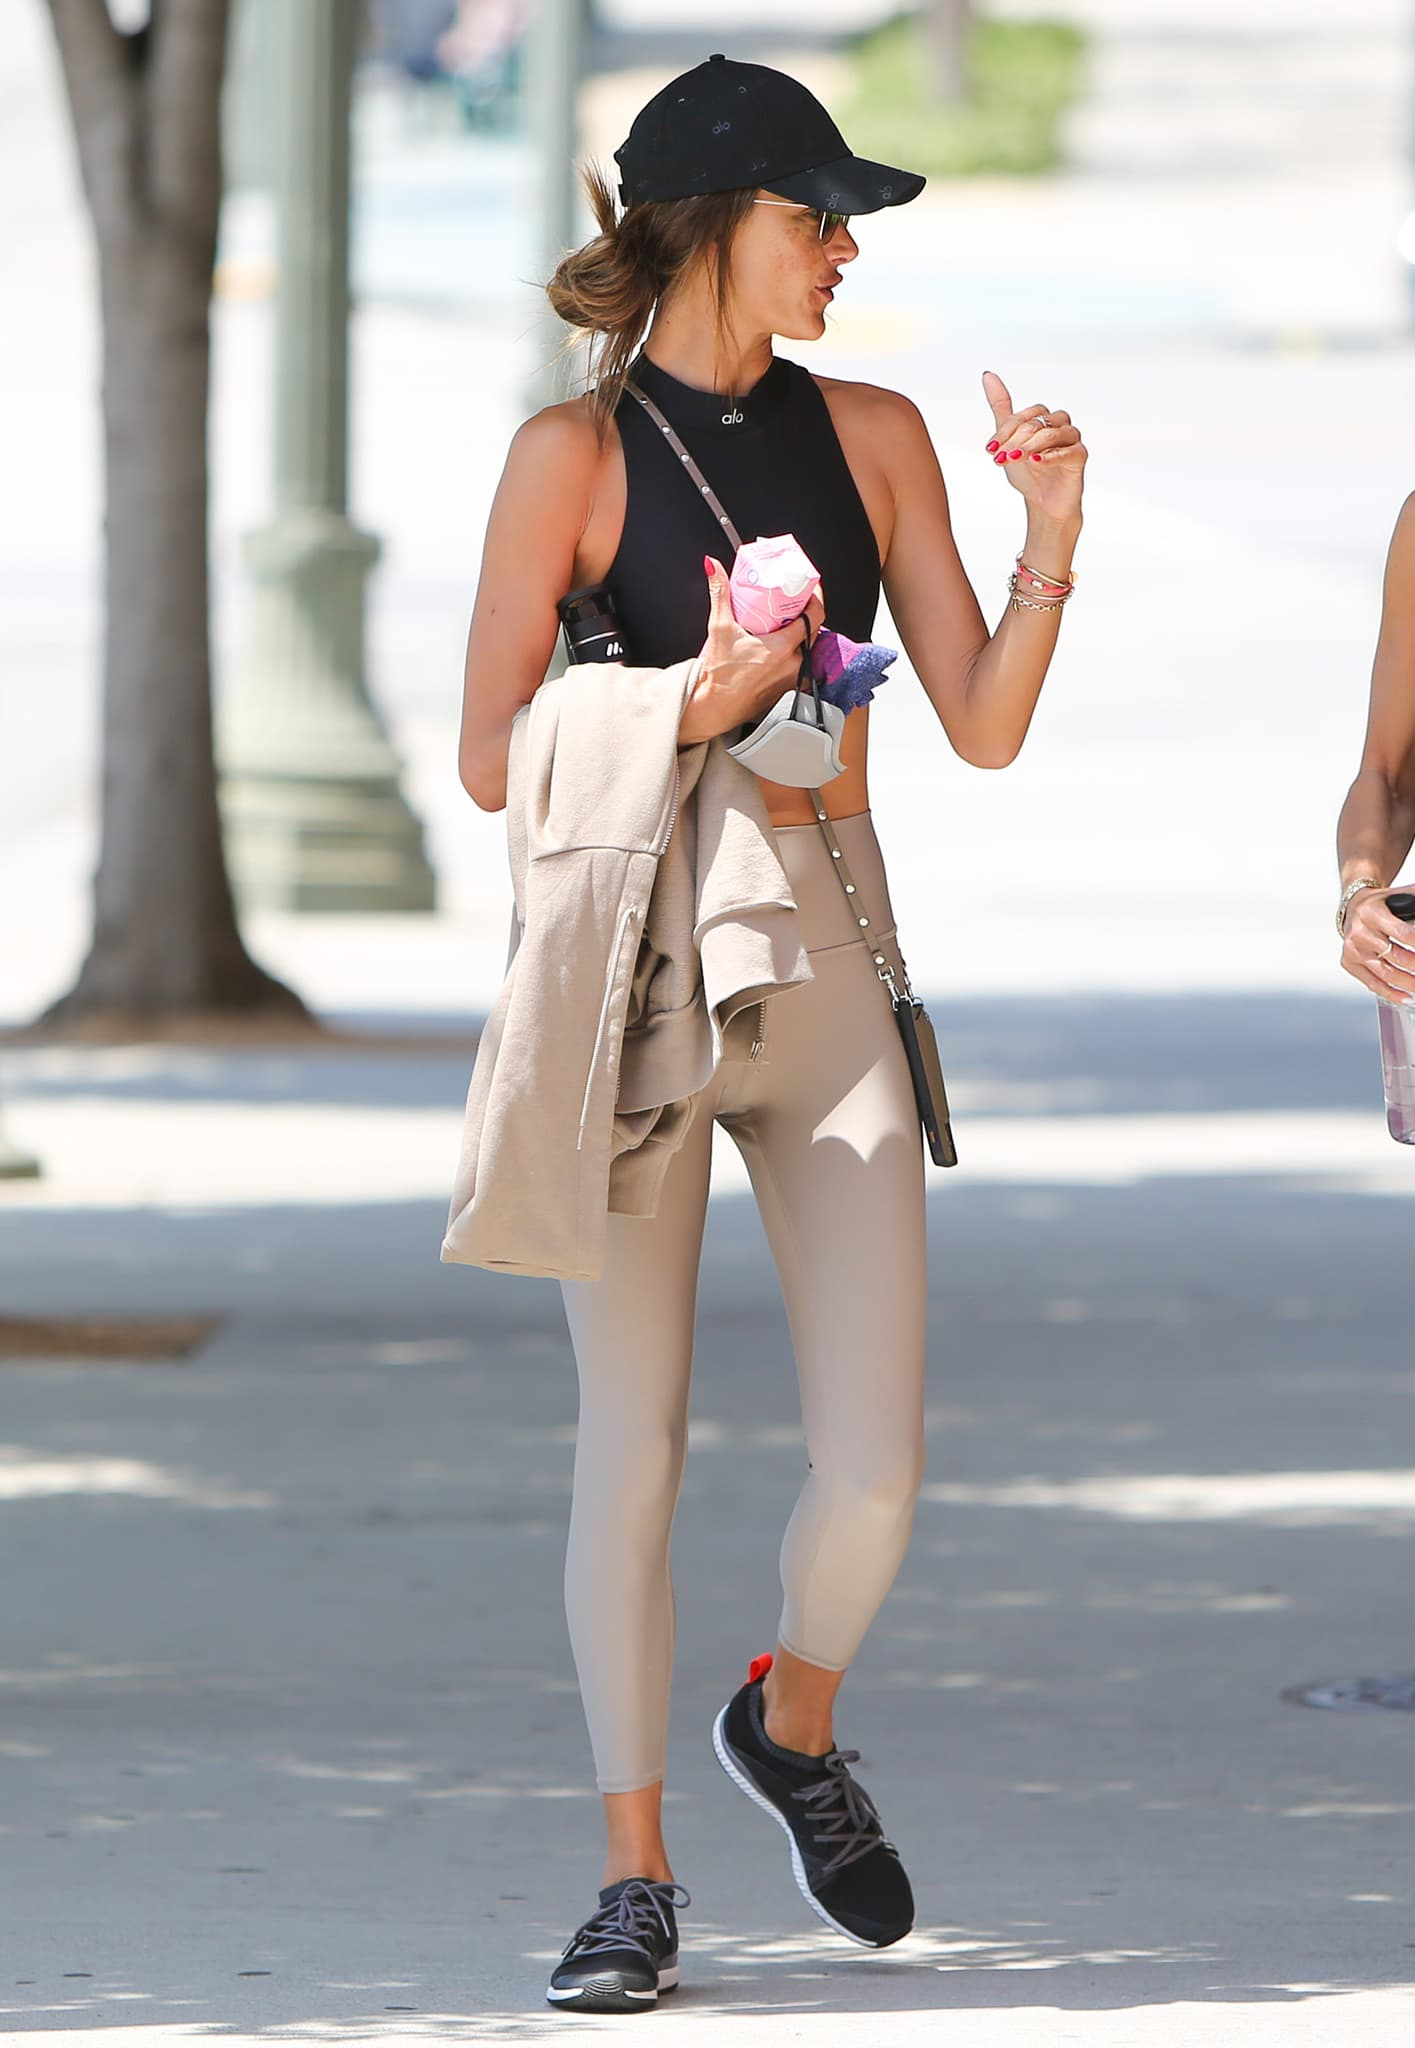 Alessandra Ambrosio goes to gym in Alo Yoga crop top and leggings on June 3, 2021